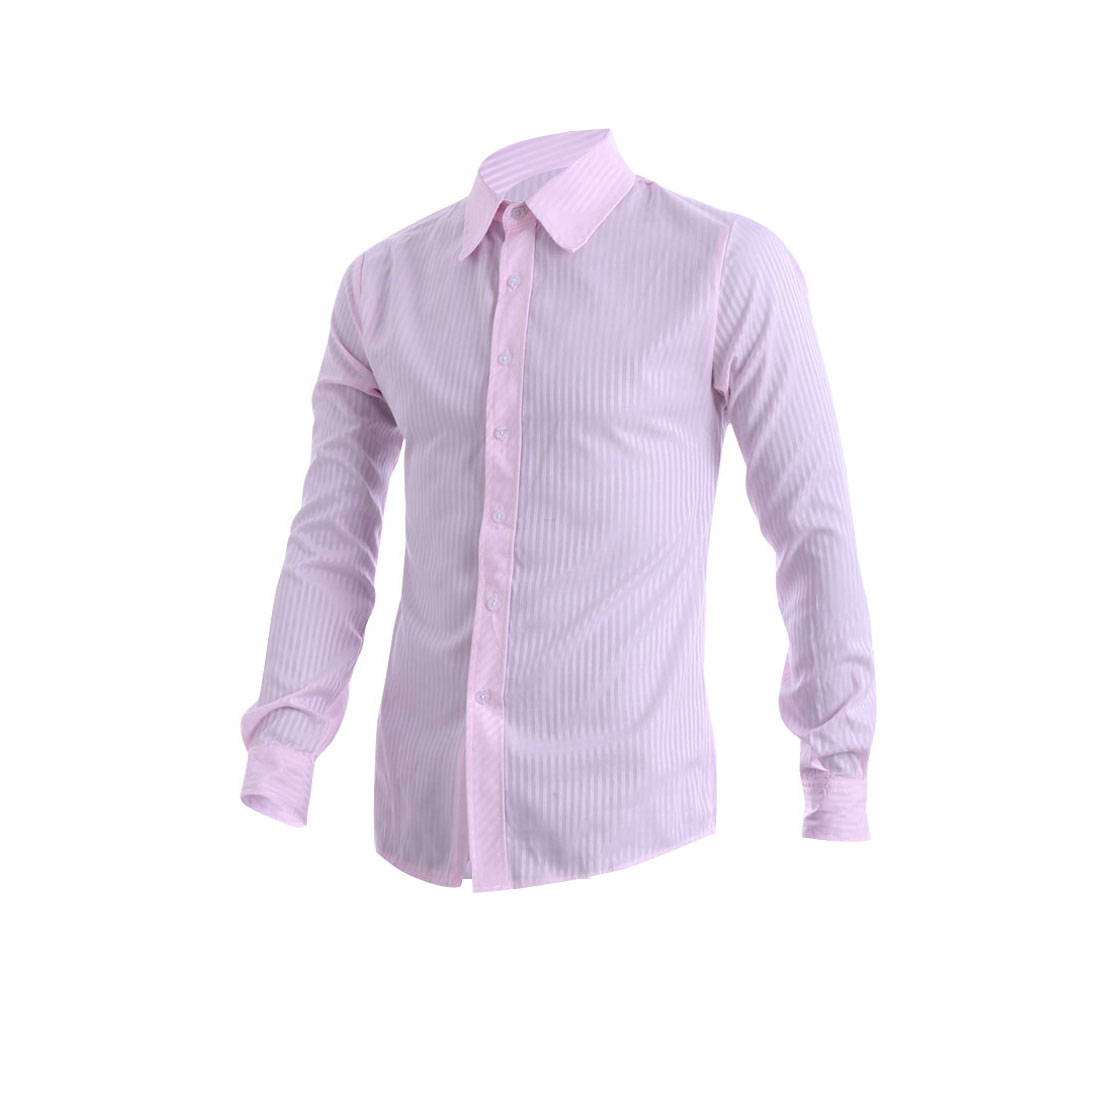 Mens Pink Buttoned Cuff Stripes Design Casual Chic Shirt M